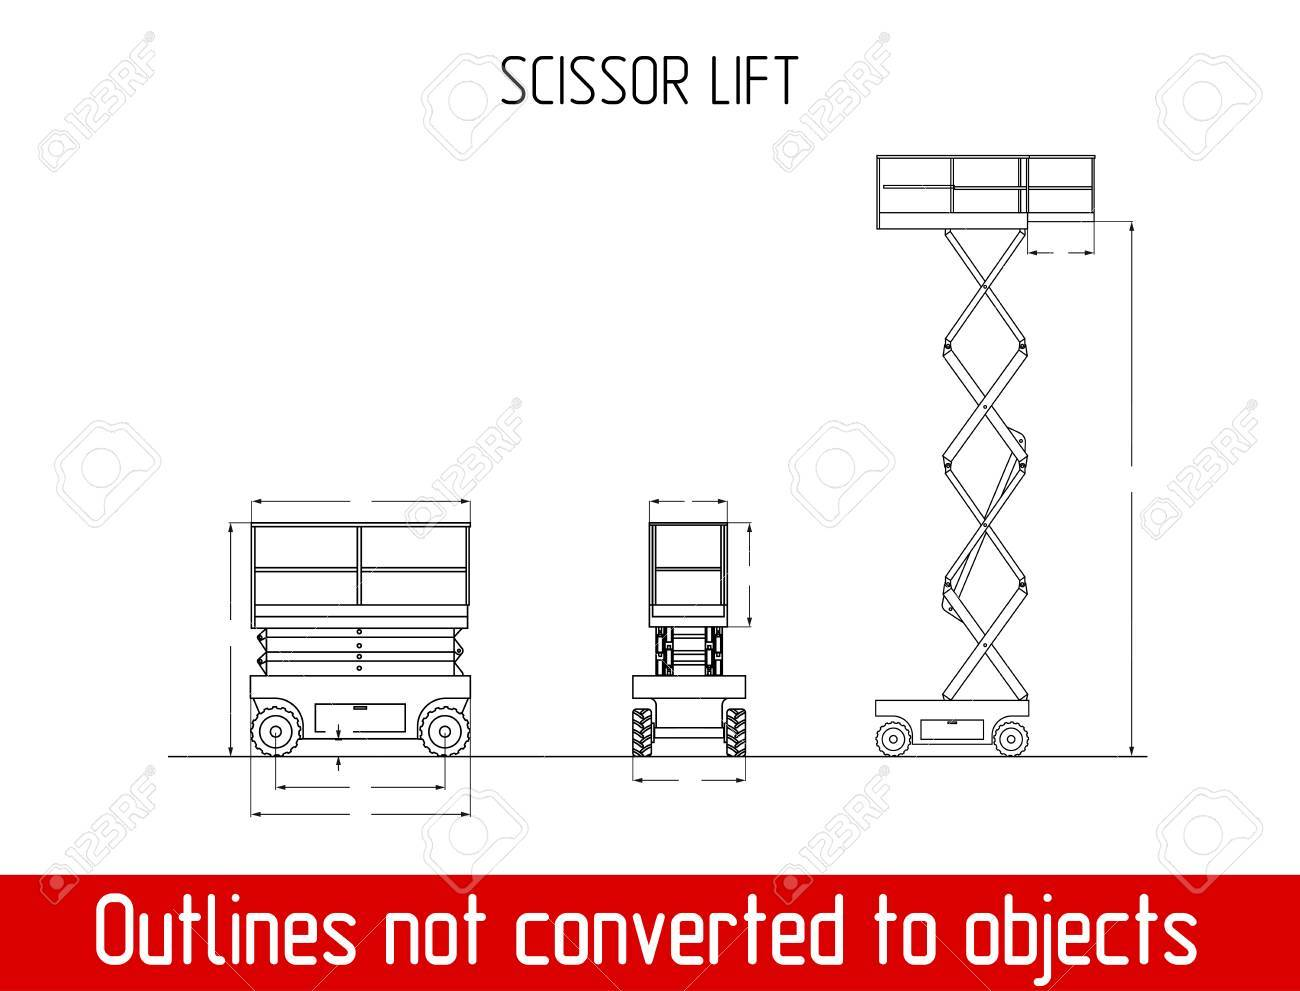 Scissor Lift Overall Dimensions Blueprint Template Illustration ...